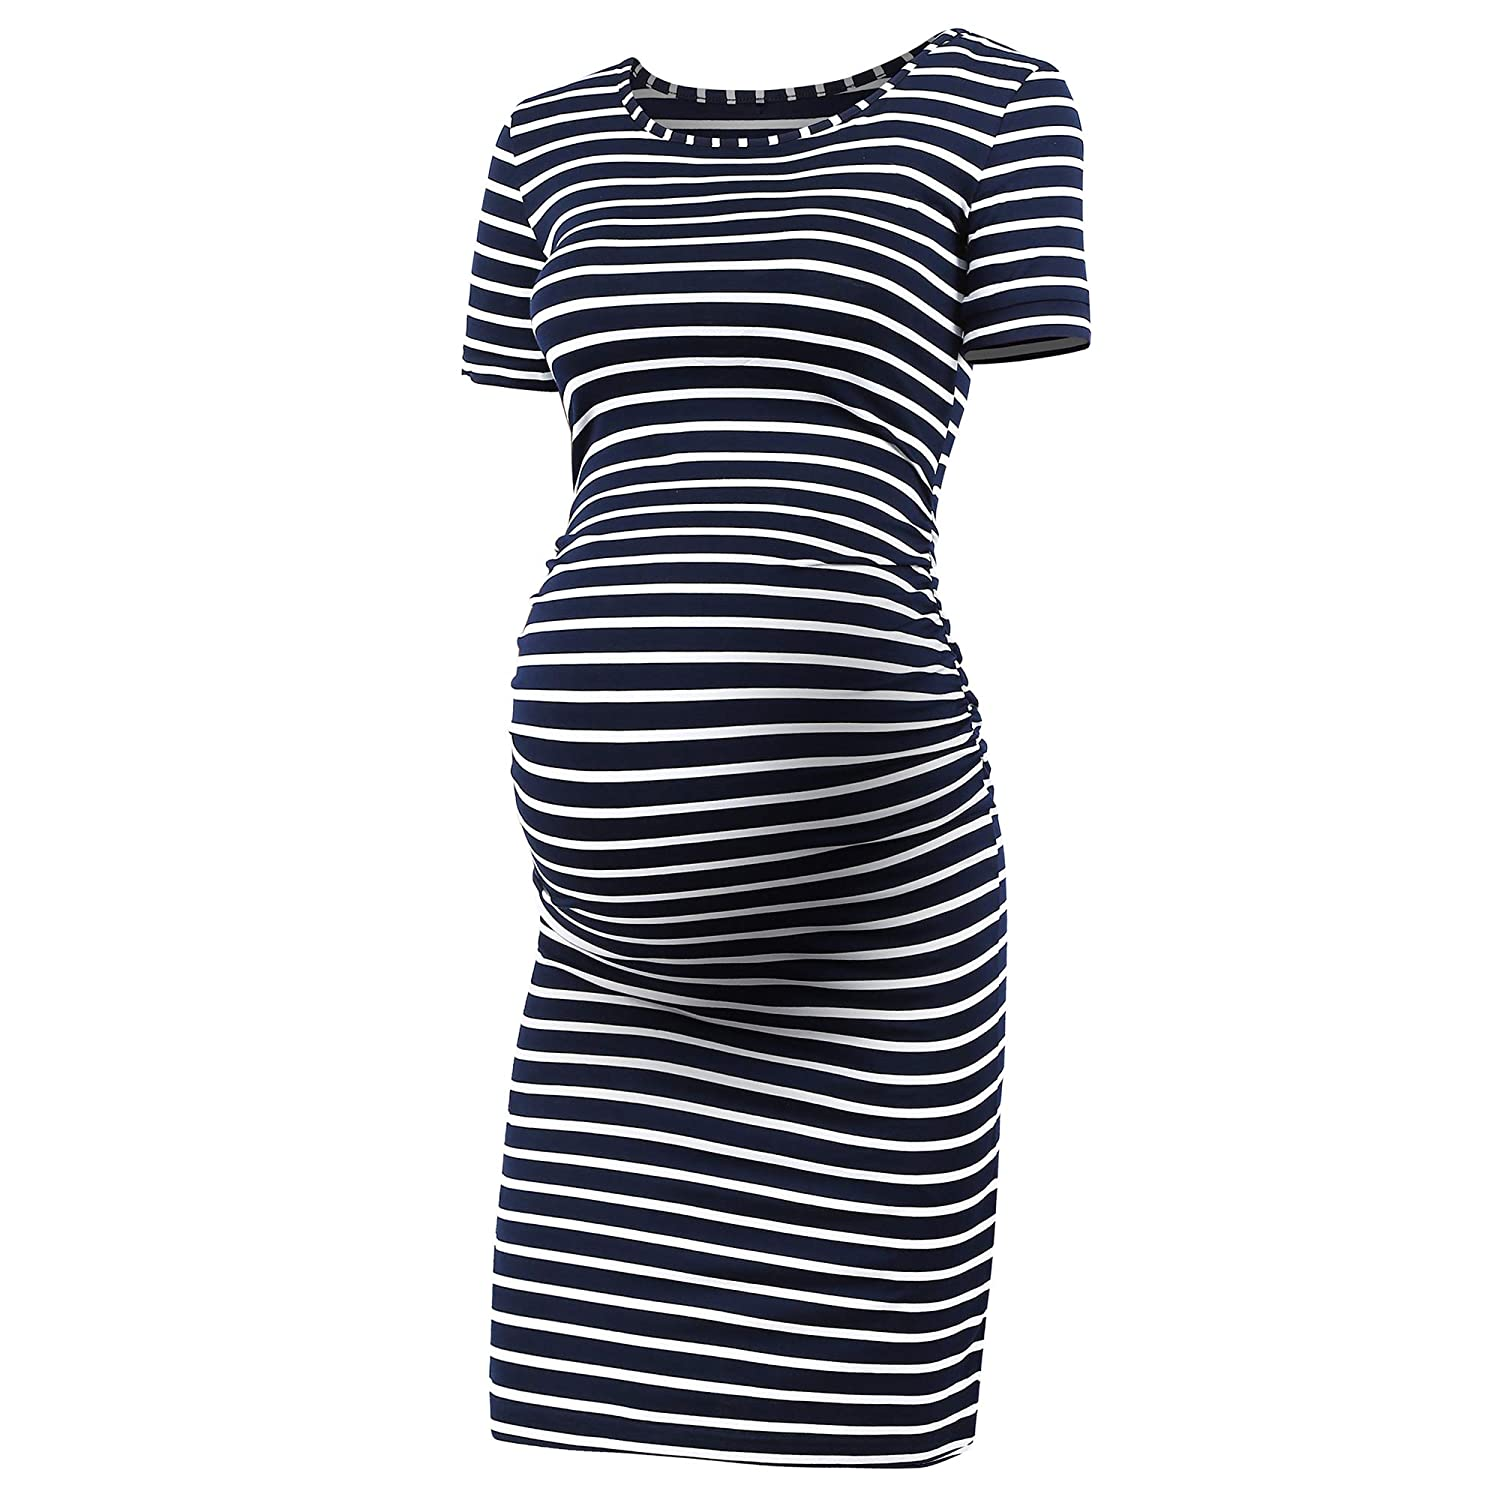 RNXRBB DRESS レディース B07FVMZW2Z Medium|Navy Stripe-2 Navy Stripe-2 Medium